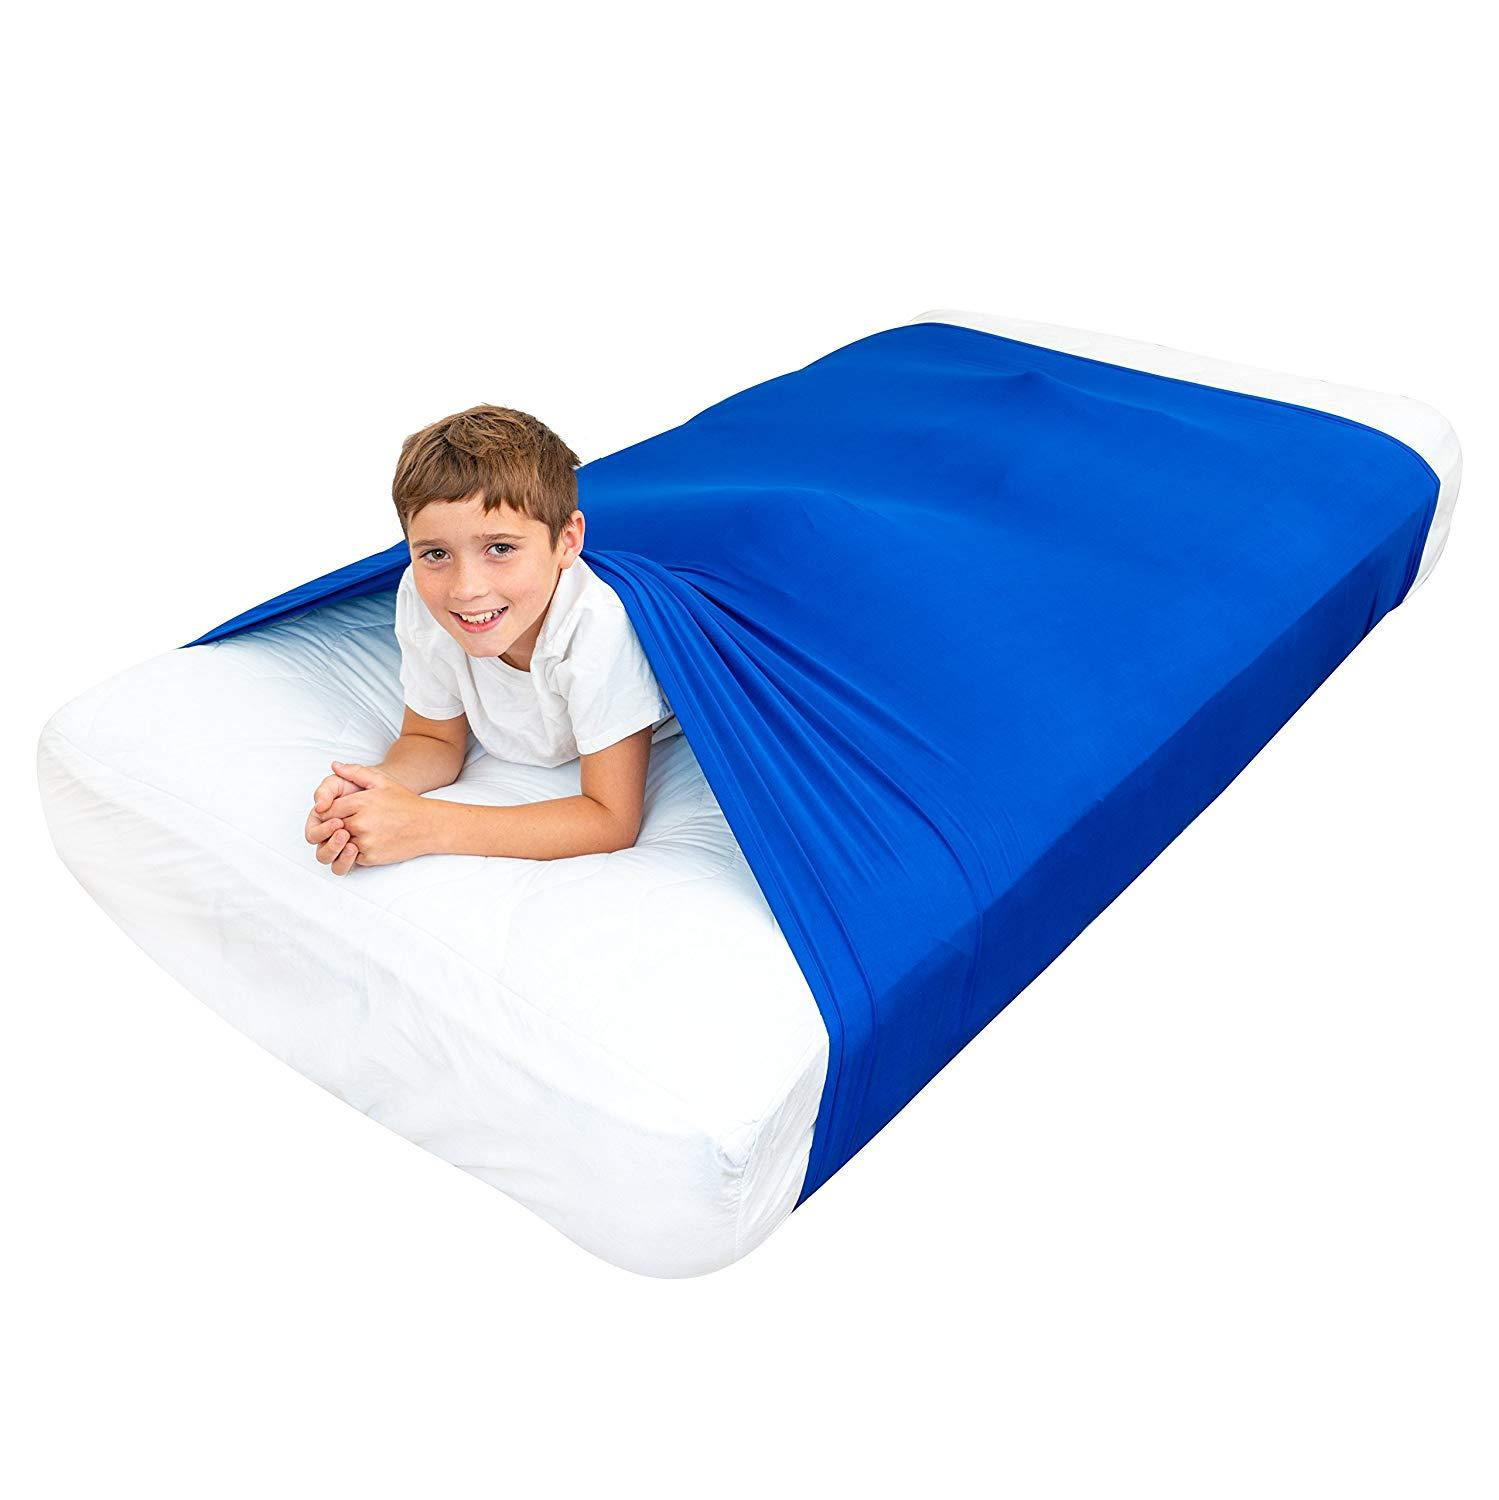 Sensory Bed Sheet For Kids Ages 5+ Compression Alternative To Weighted Blankets Sensory Compression Sheet